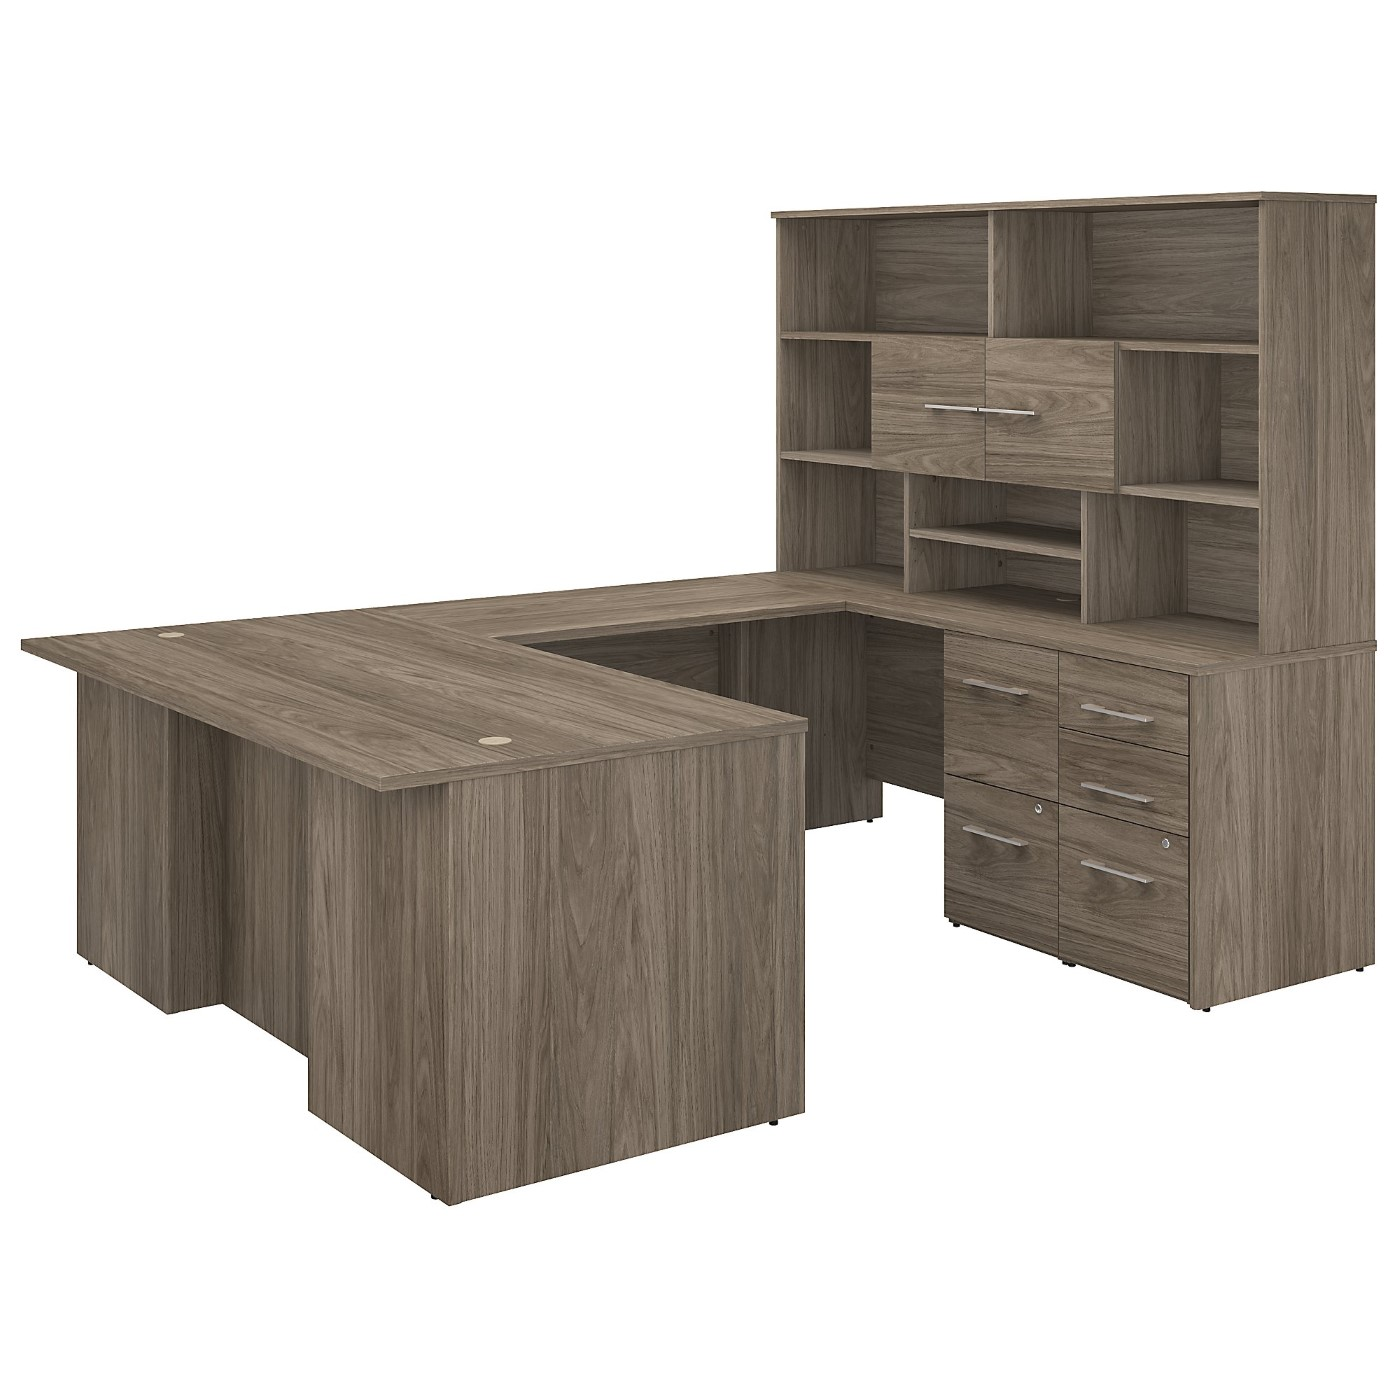 BUSH BUSINESS FURNITURE OFFICE 500 72W U SHAPED EXECUTIVE DESK WITH DRAWERS AND HUTCH. FREE SHIPPING SALE DEDUCT 10% MORE ENTER '10percent' IN COUPON CODE BOX WHILE CHECKING OUT.